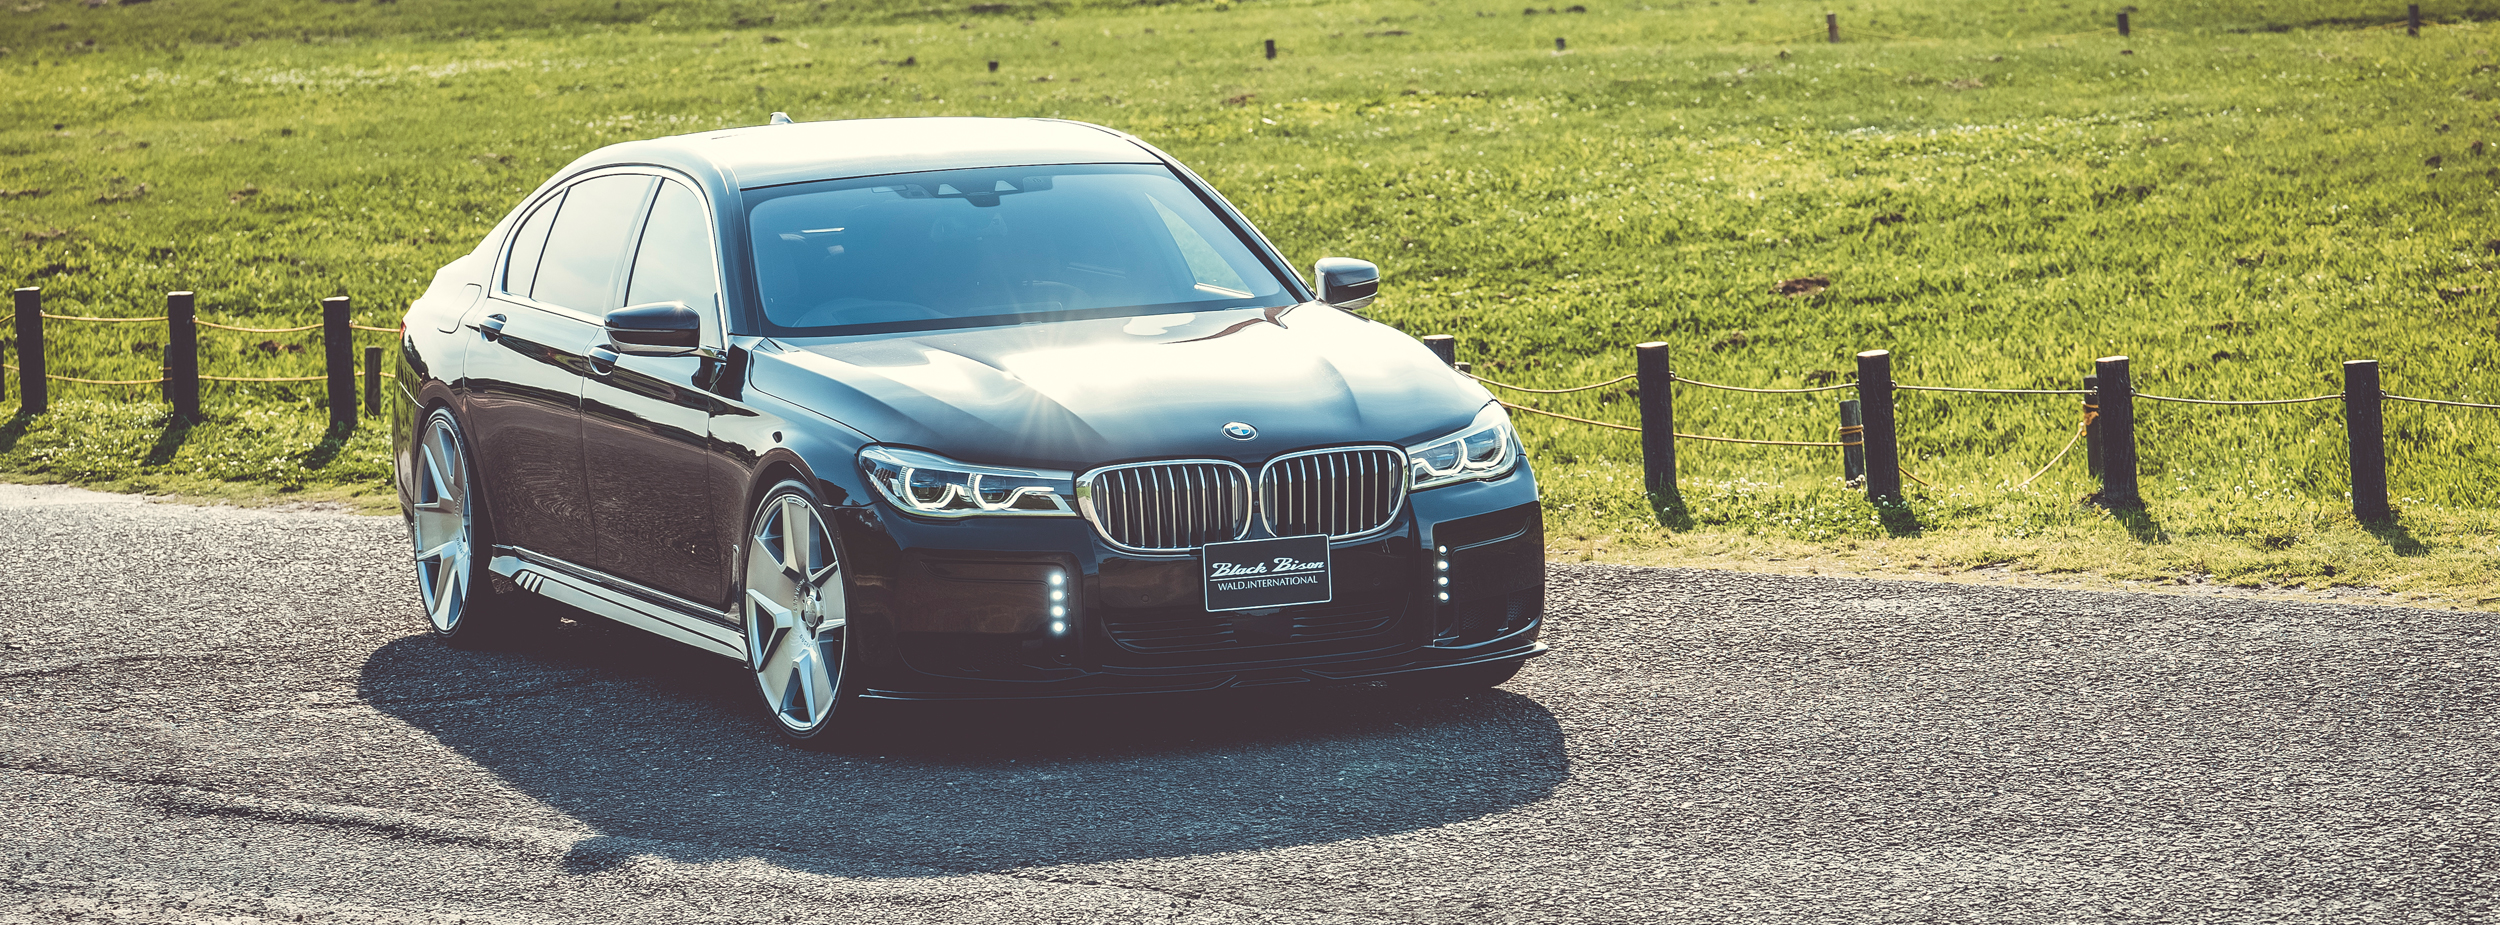 BMW 7SERIES WALD SPORTS LINE BLACK BISON EDITION